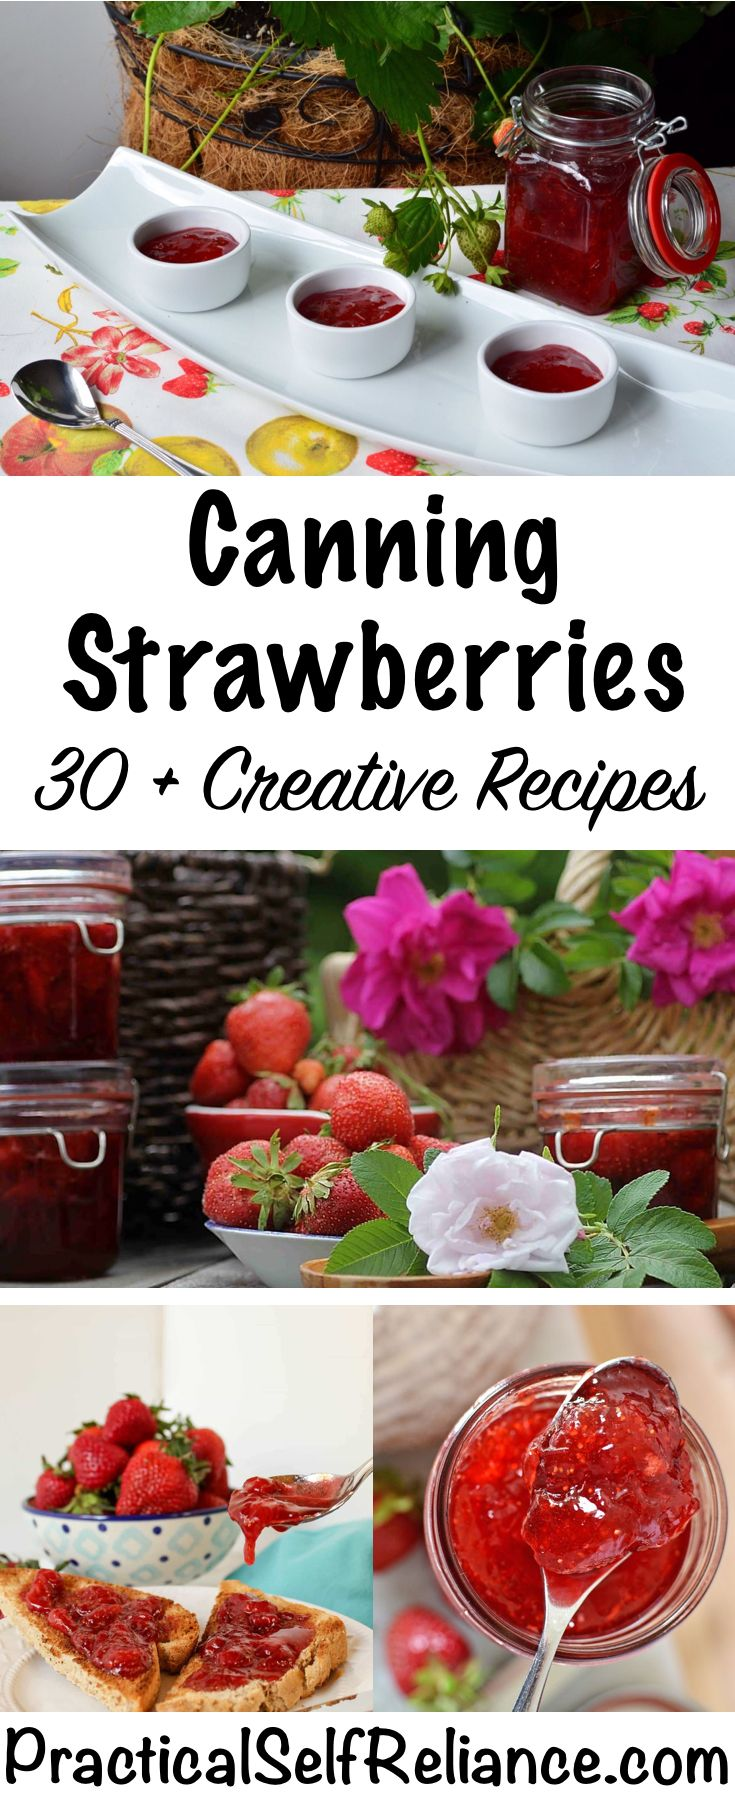 30+ Ways to Can Strawberries - Creative Canning Recipes